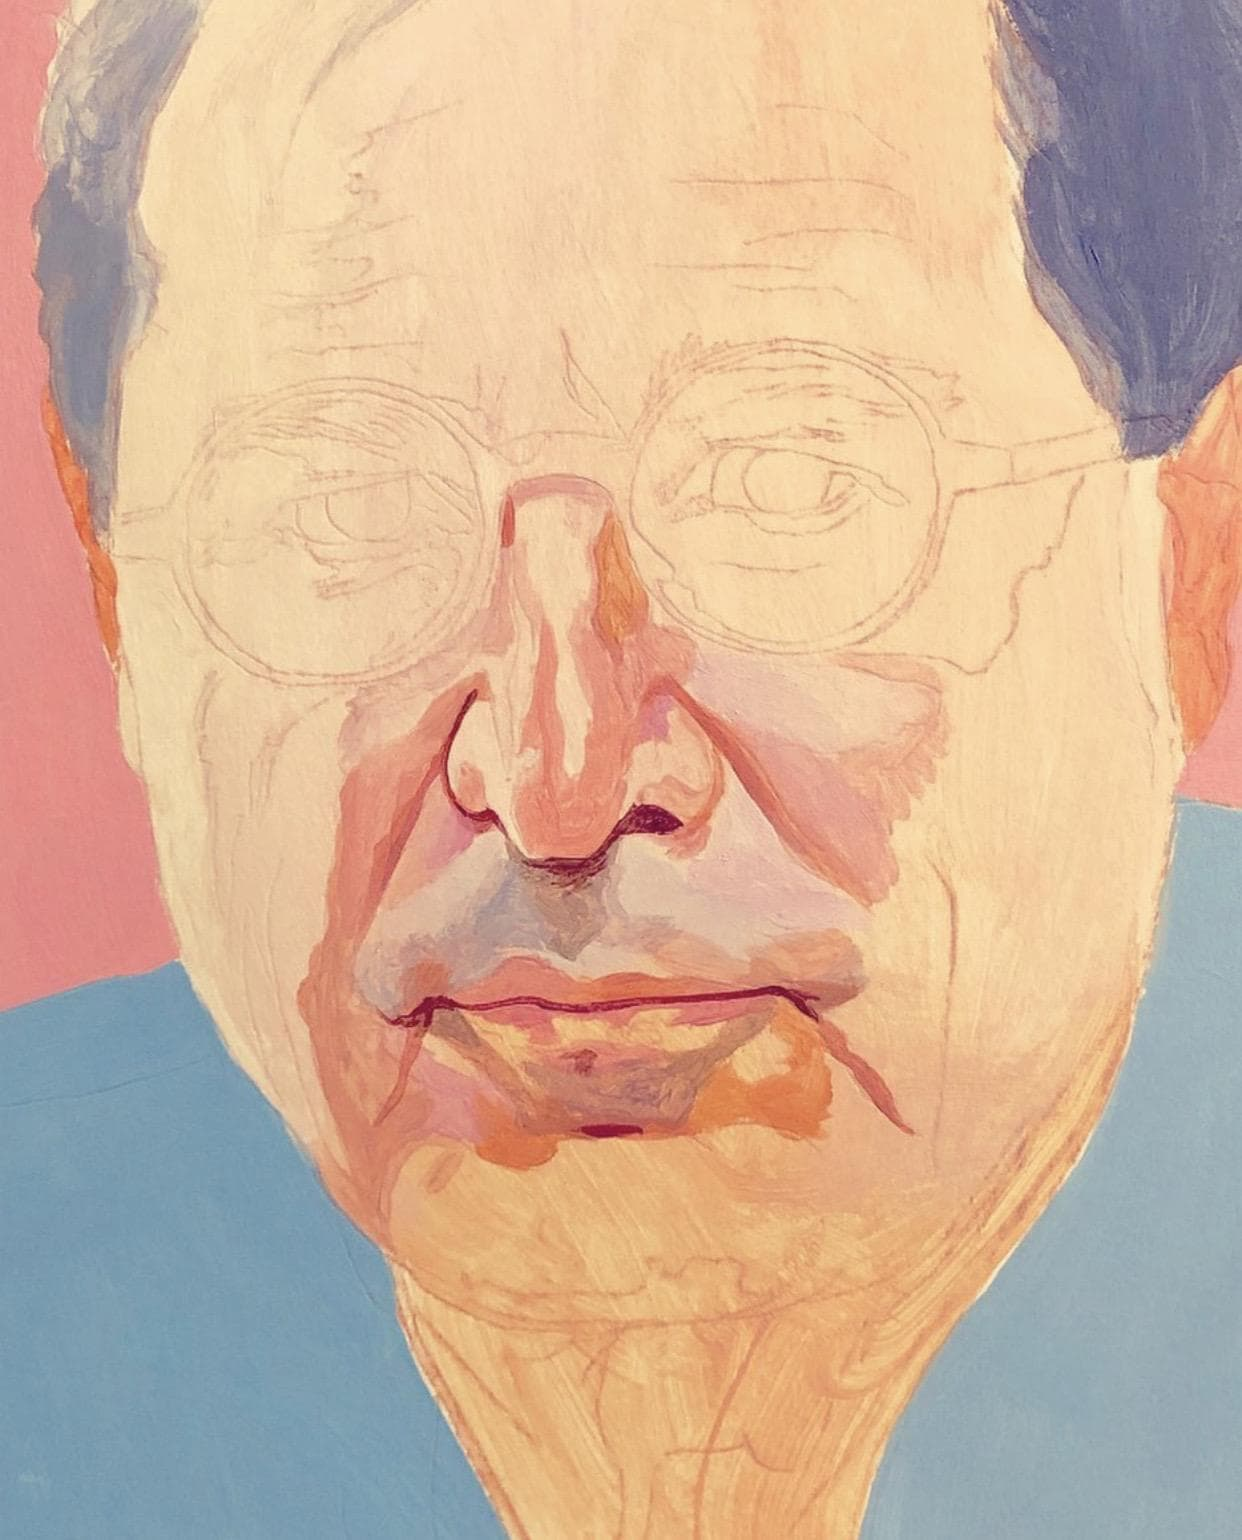 Portrait Painting in progress by David de las Heras